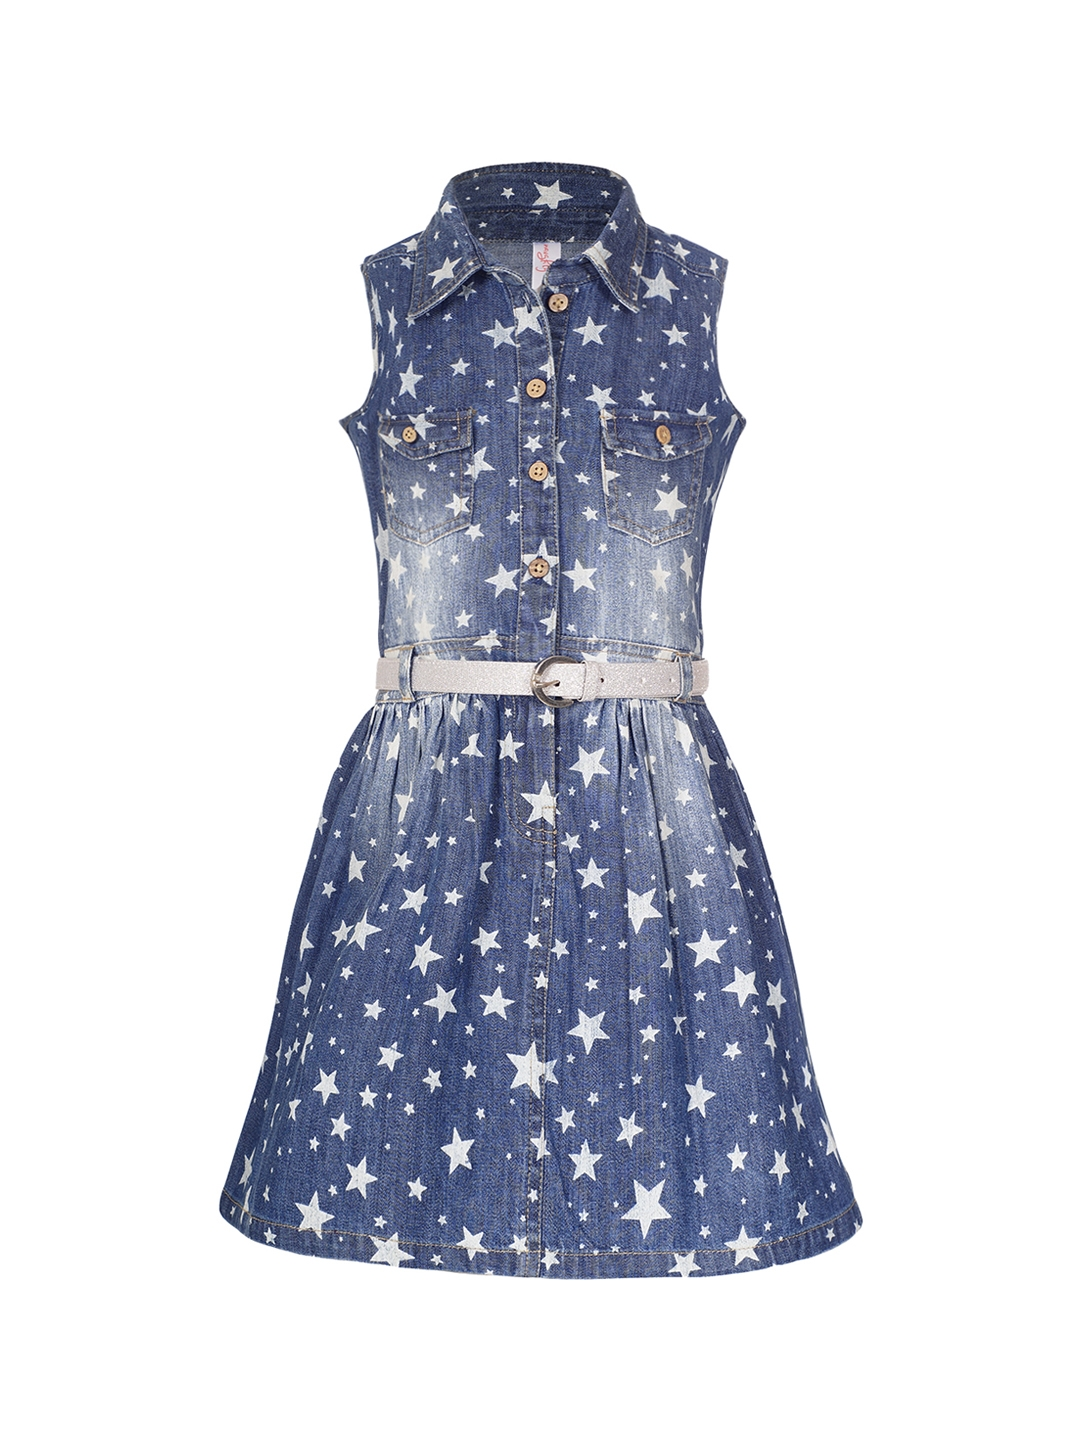 fe660f109 Buy Naughty Ninos Girls Blue Printed Fit And Flare Denim Dress ...